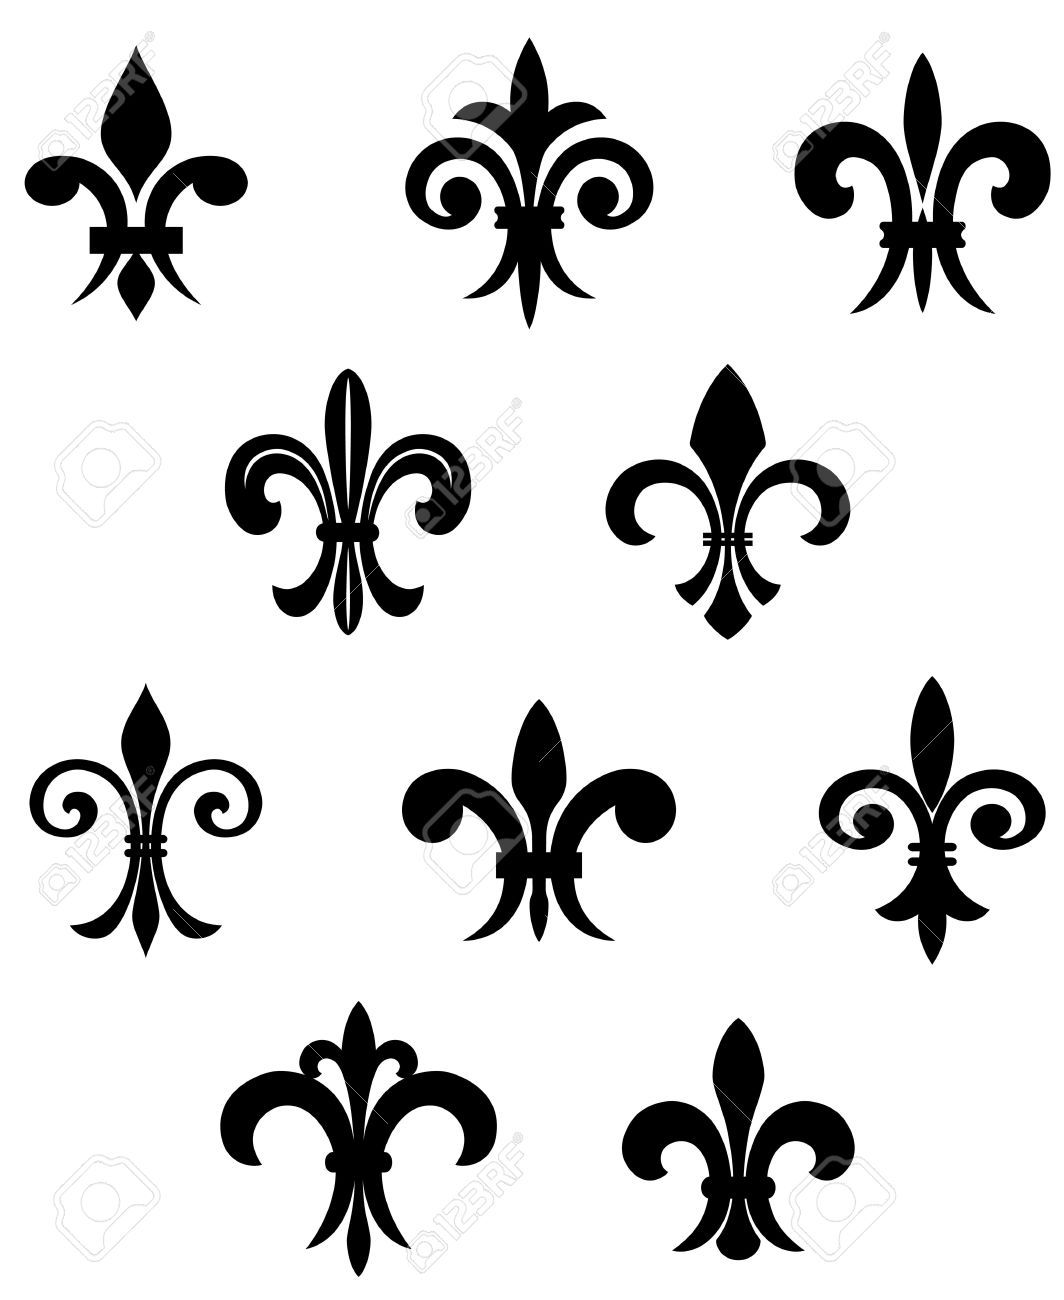 Orleans symbol cliparts stock vector and royalty free orleans illustration of royal french lily symbols for design and decorate vector art clipart and stock vectors biocorpaavc Gallery